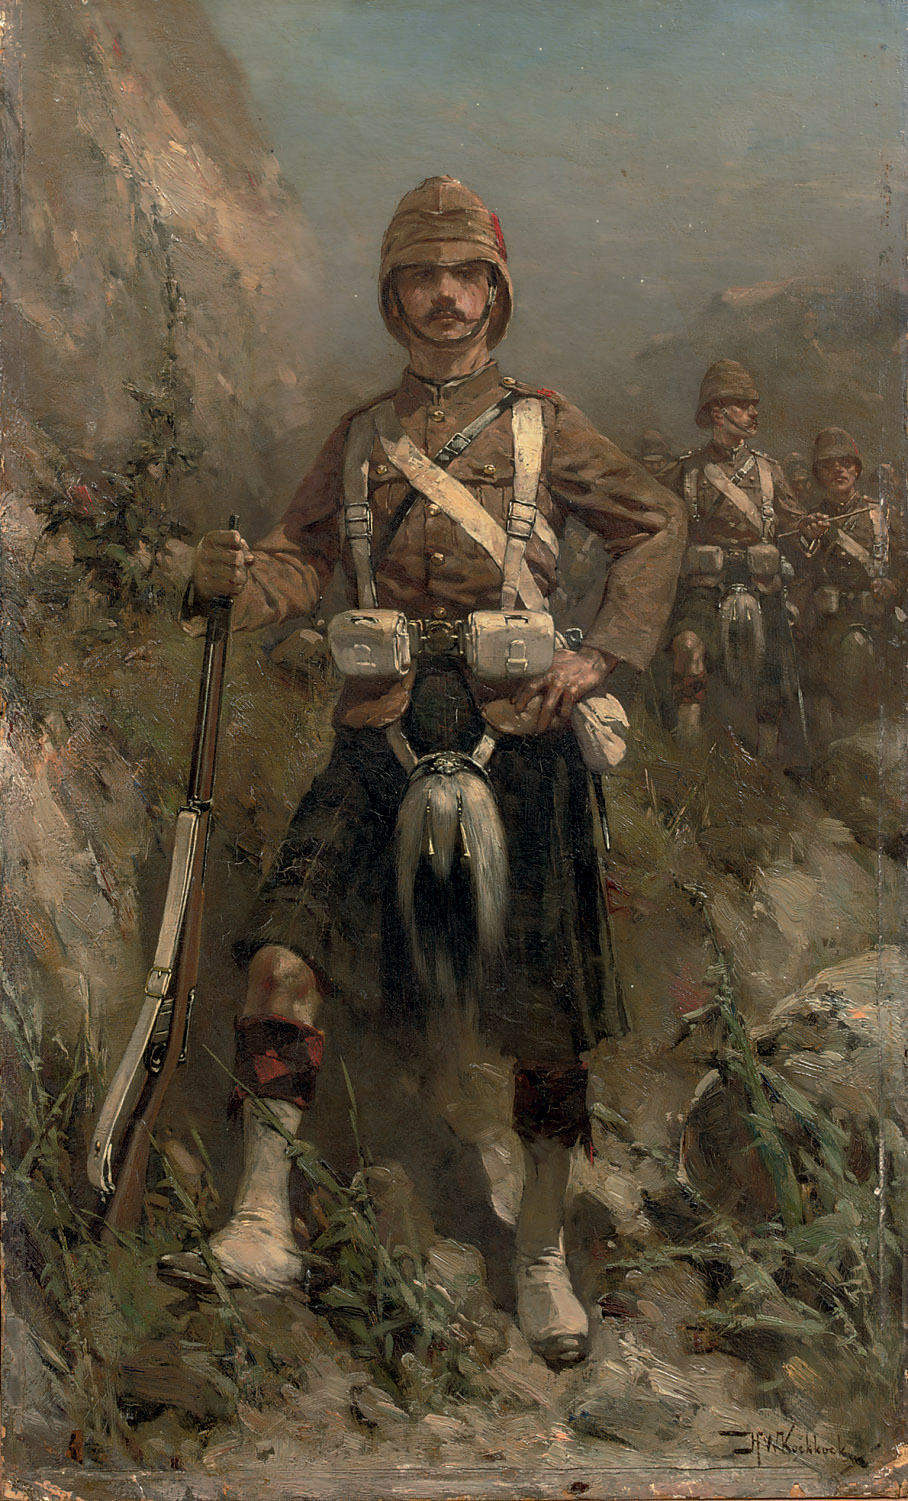 'A dour laddie of the Hindy-War' The 2nd batallion Gordon-Highlanders